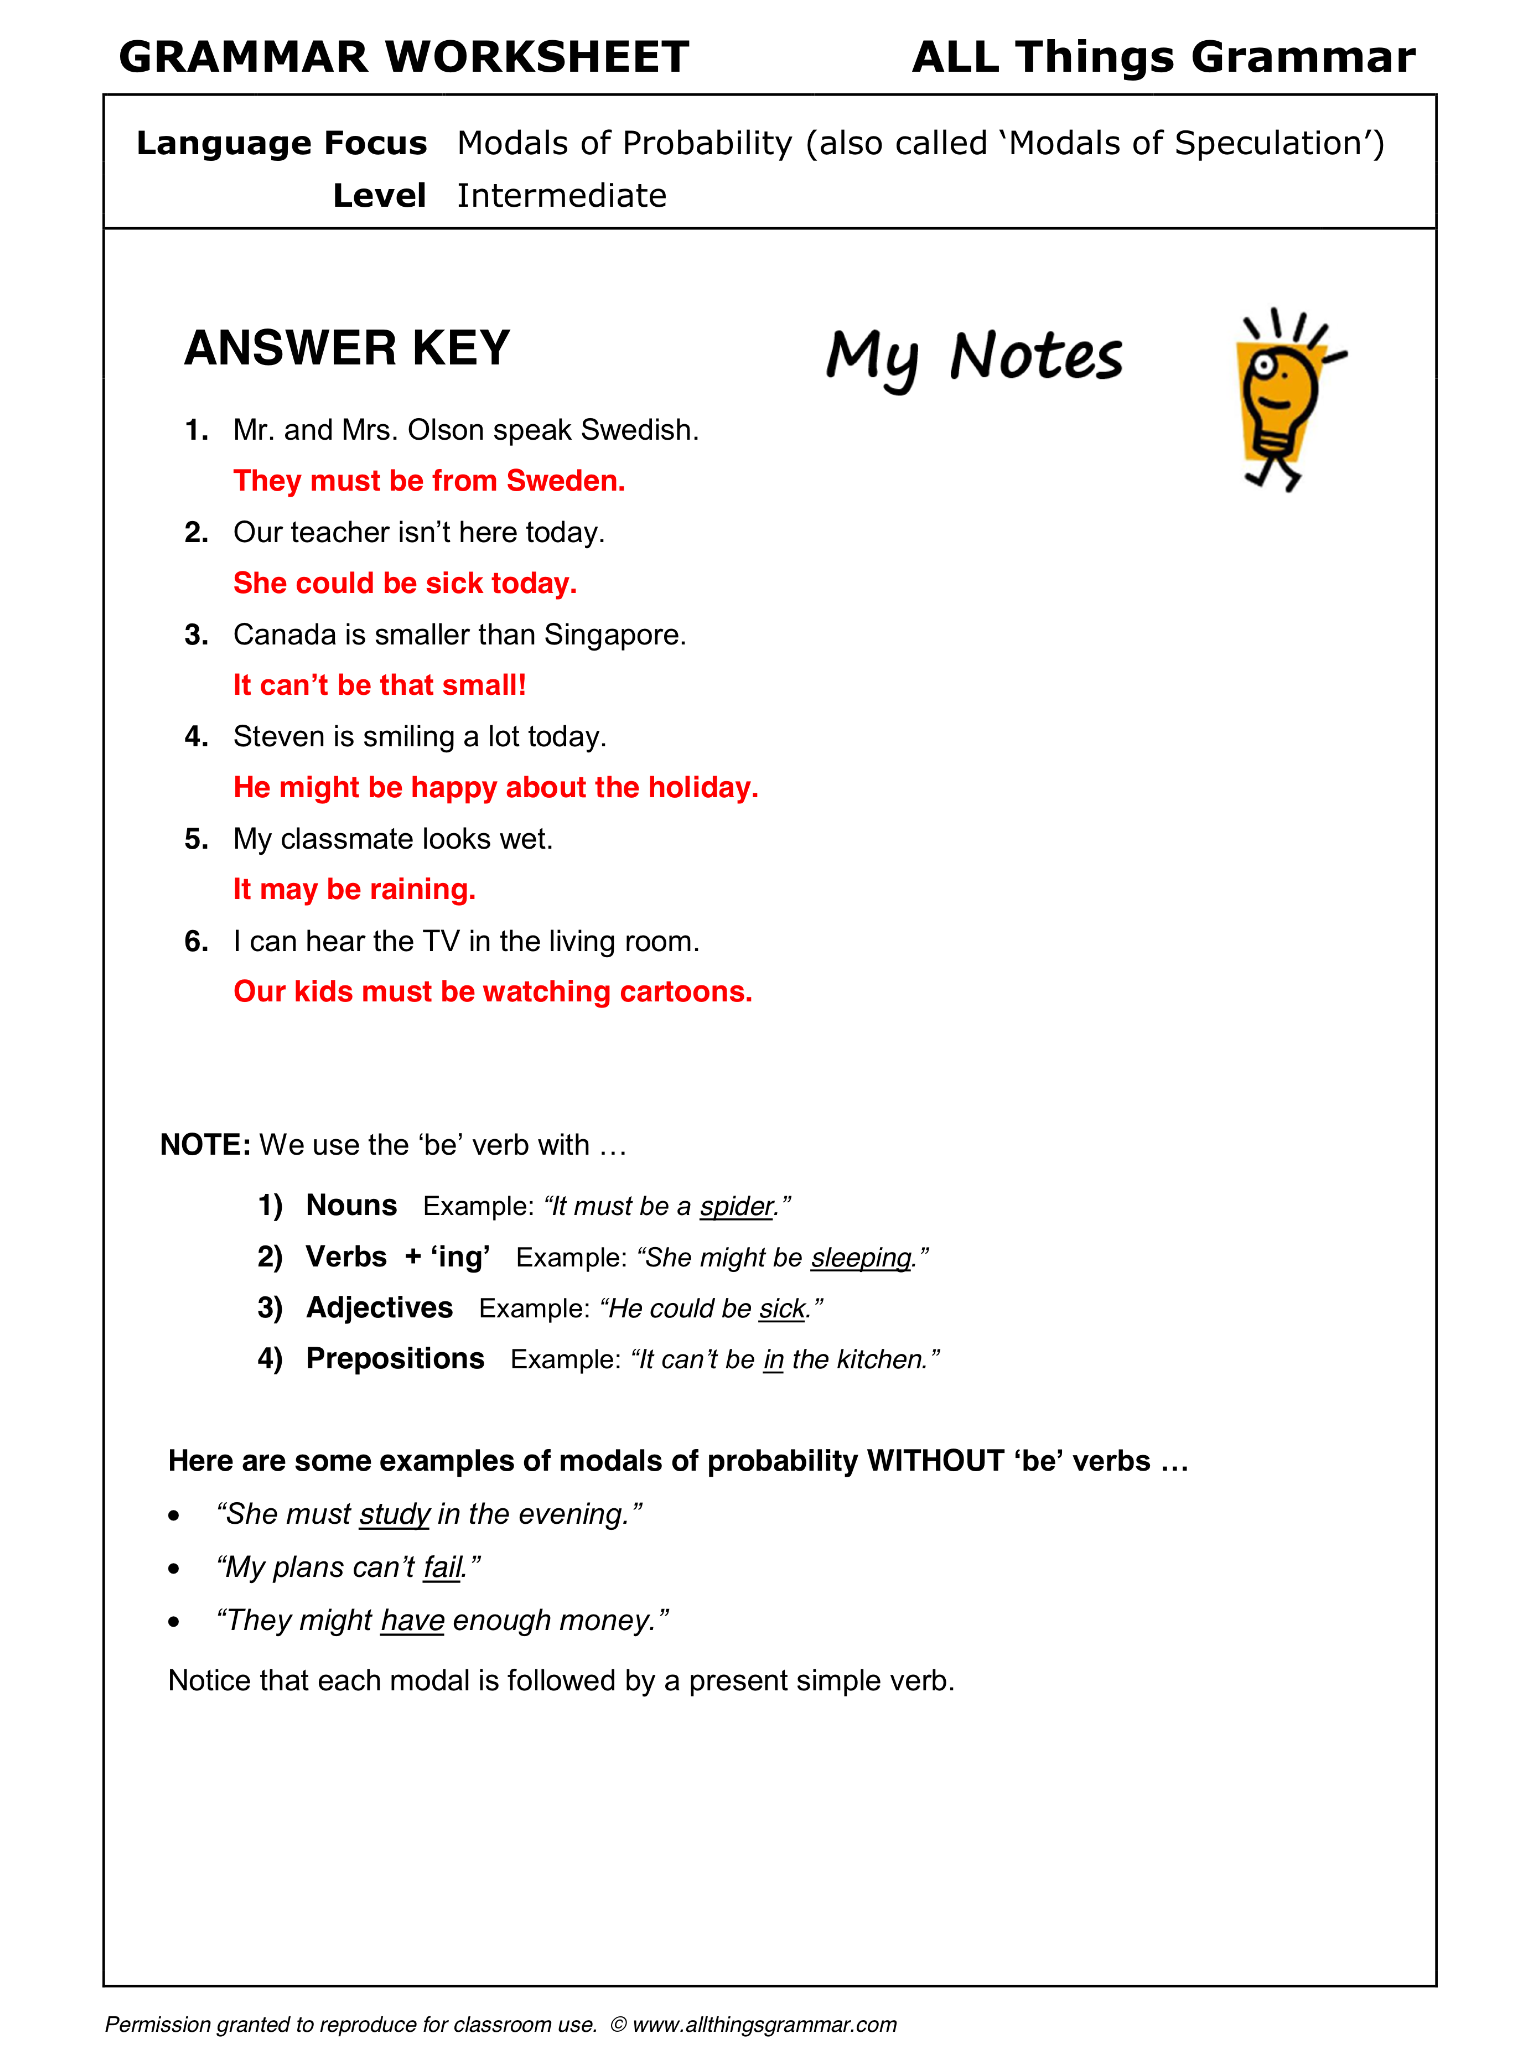 English Grammar Modals Of Probability With Be For Talking About The Present Www Allthingsgrammar Com Modals Of Probability Html [ 2048 x 1536 Pixel ]